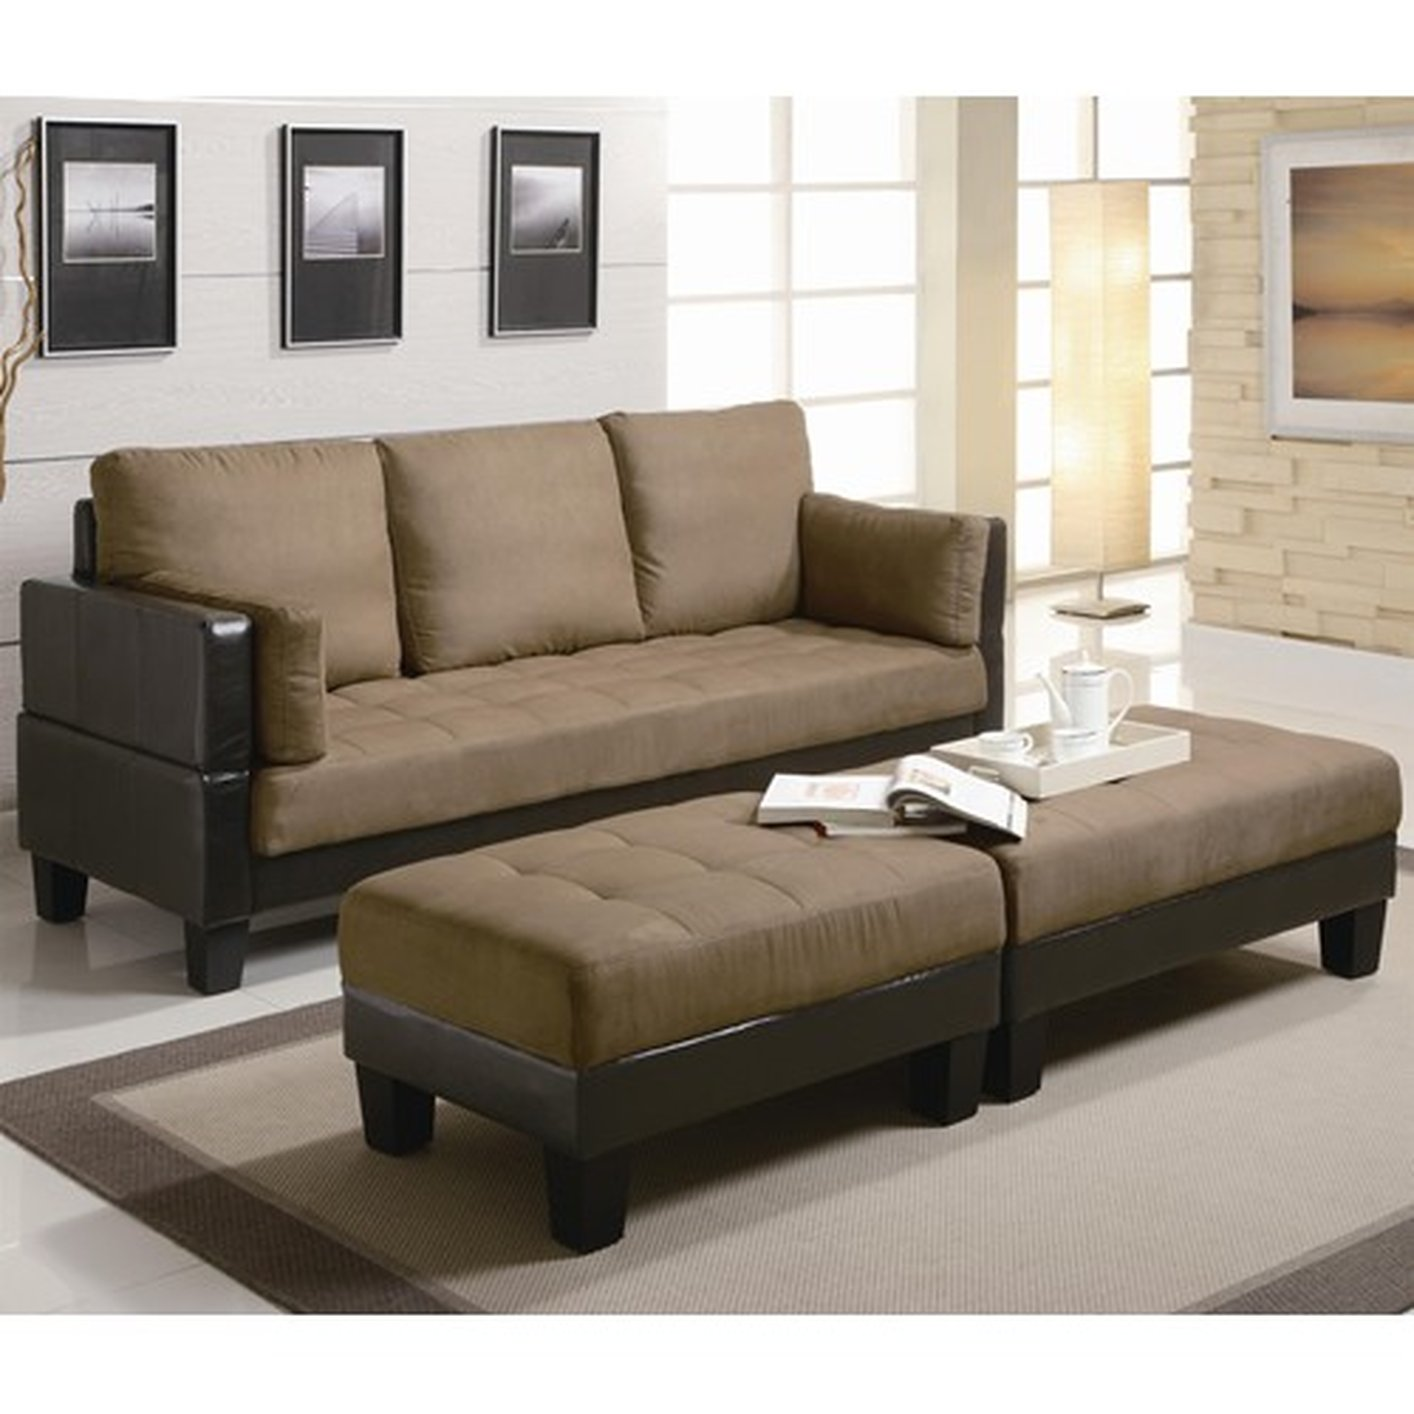 Brown Fabric Sofa Bed And Ottoman Set